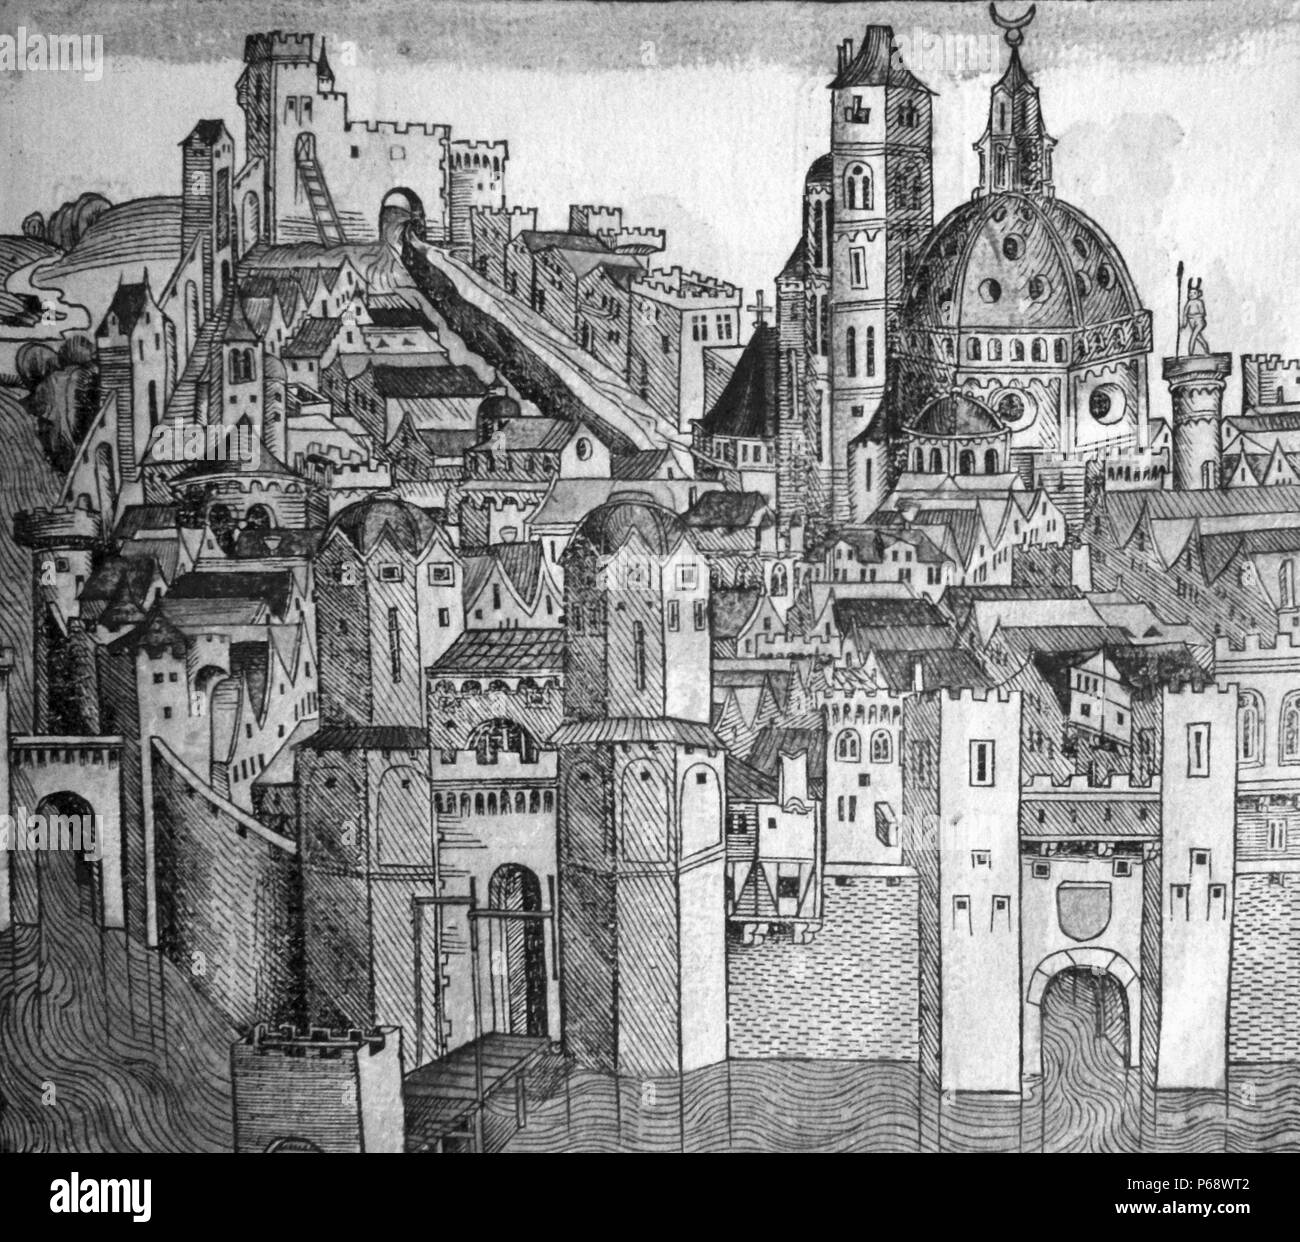 Marseille 1493. Illustration from the Nuremberg Chronicle by Hartmann Schedel (13 February 1440 – 28 November 1514) - Stock Image